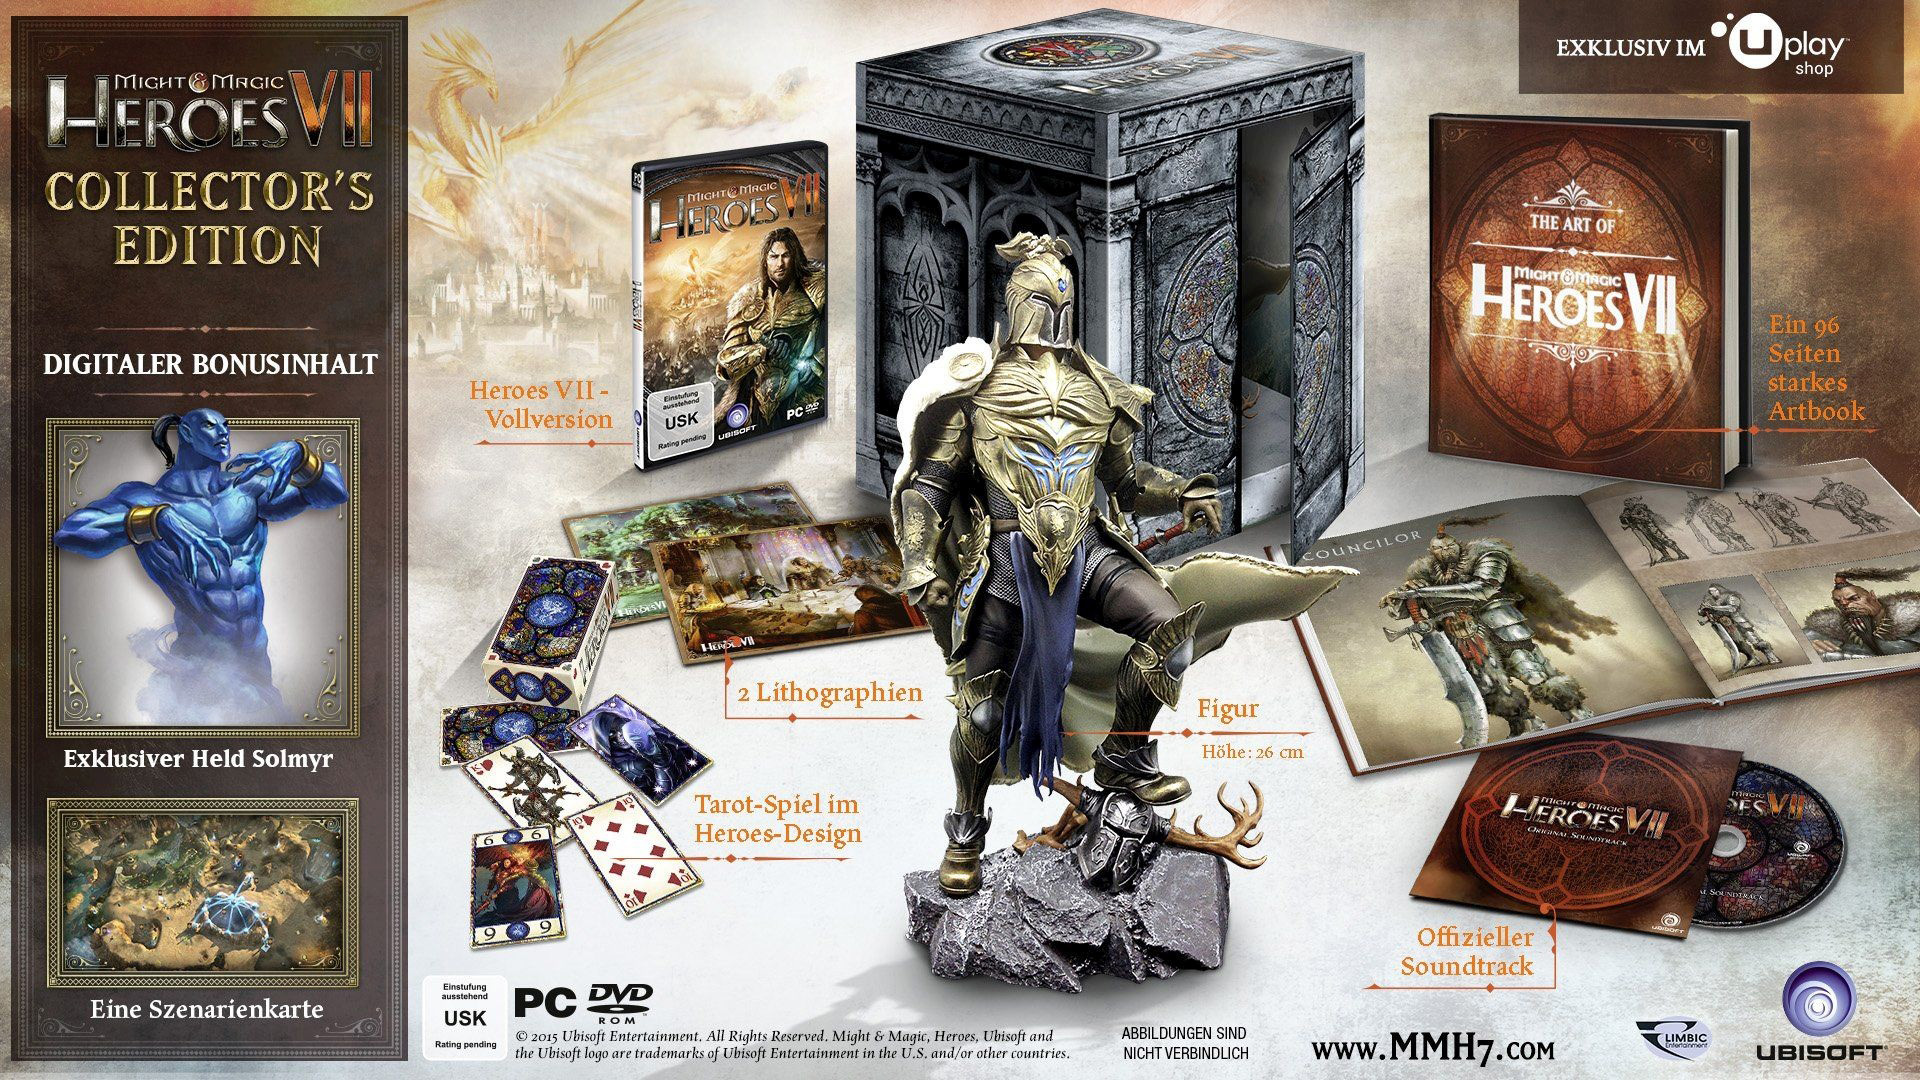 Inhalte der Might & Magic Heroes 7 Collectors Edition